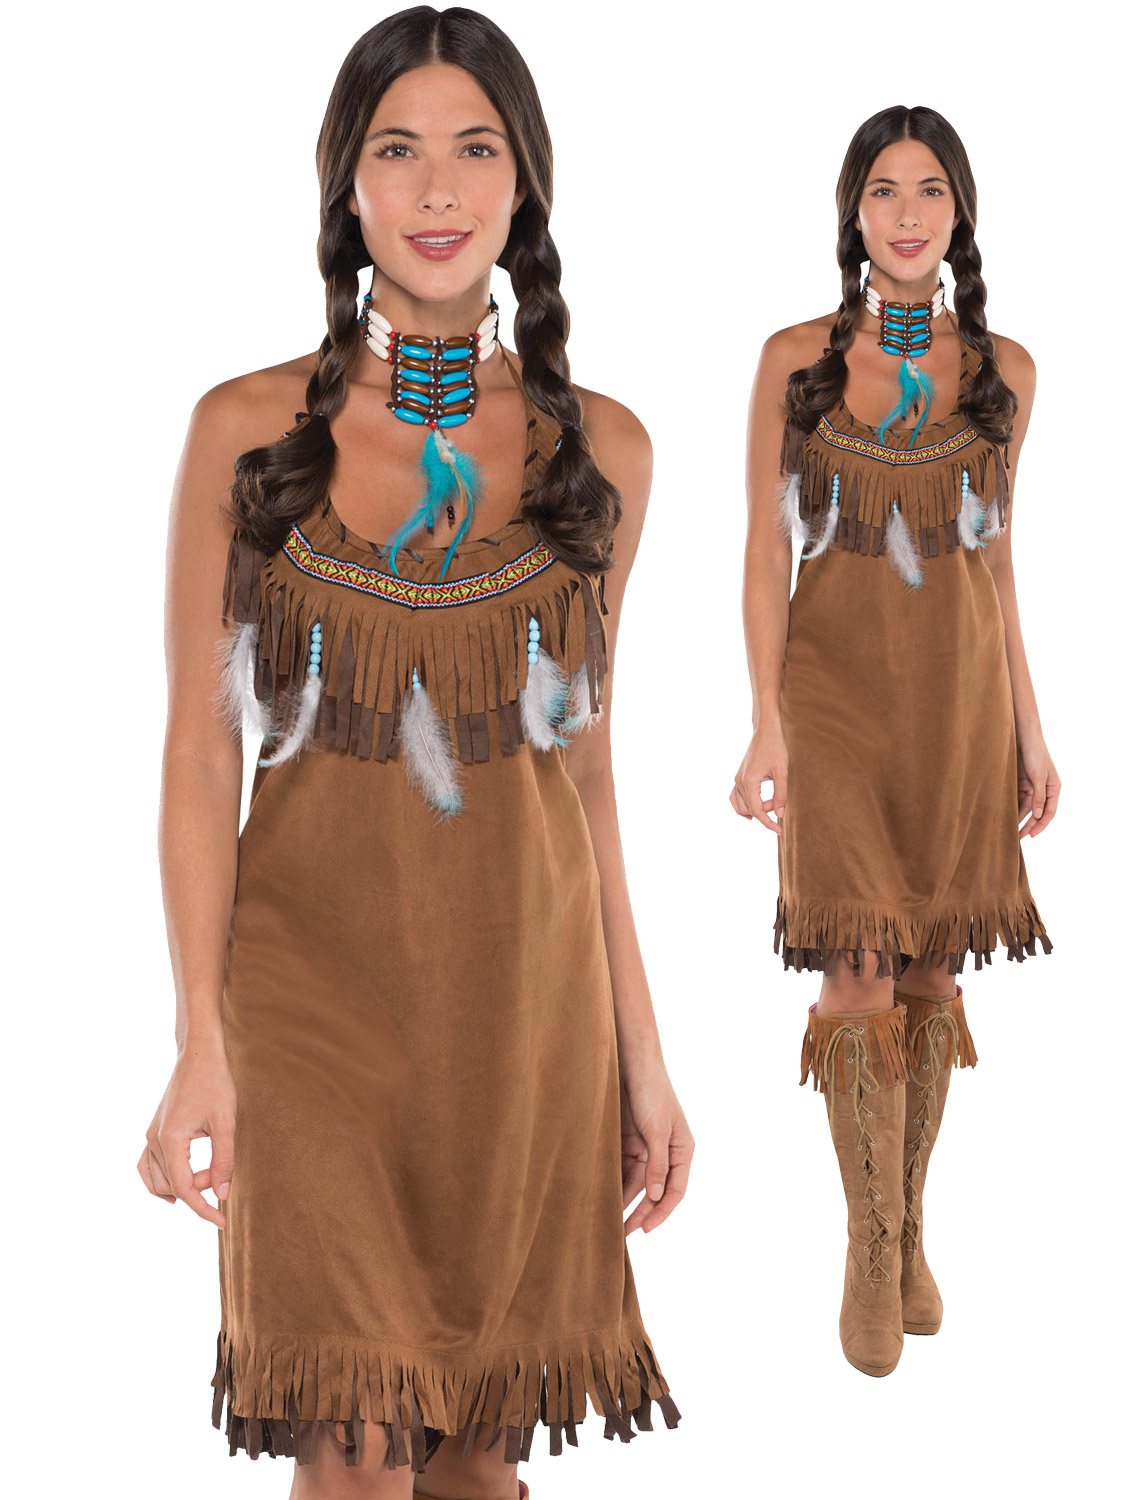 ladies red indian costume adults pocahontas native american fancy dress western ebay. Black Bedroom Furniture Sets. Home Design Ideas